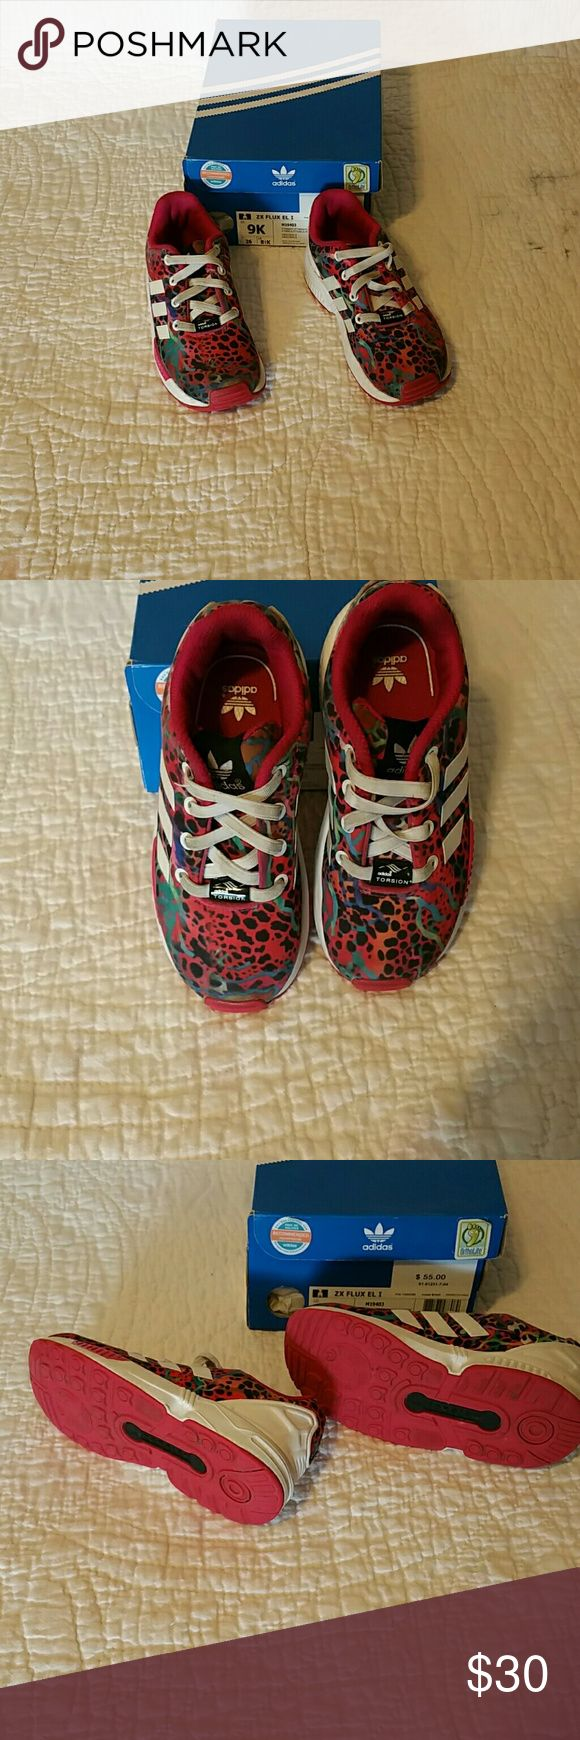 KIDS Adidas ZX FLUX sz. 9k KIDS Adidas ZX FLUX sz. 9k Adidas Shoes Sneakers